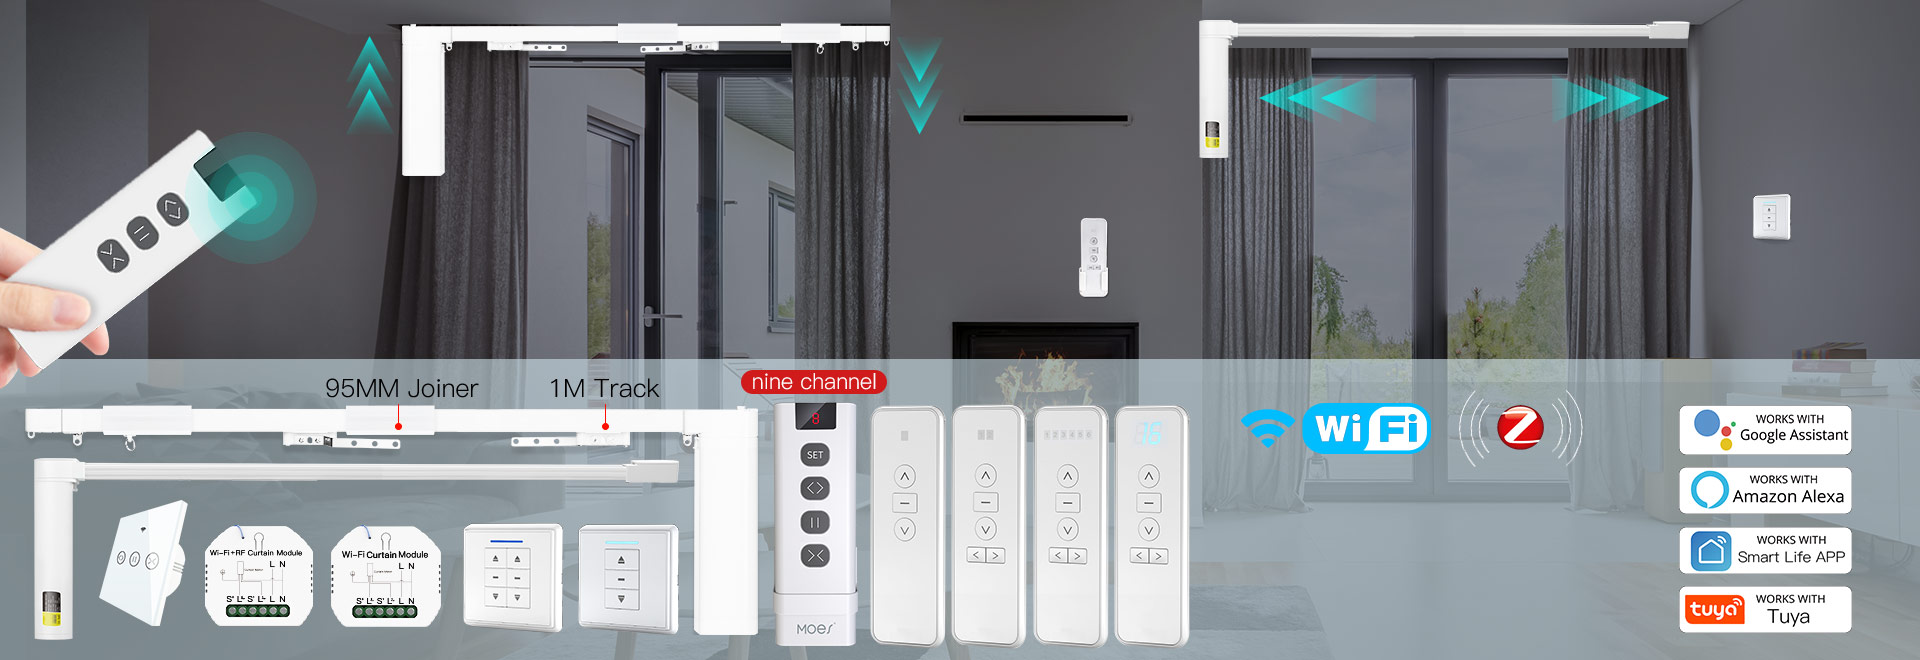 Smart Curtain Control System